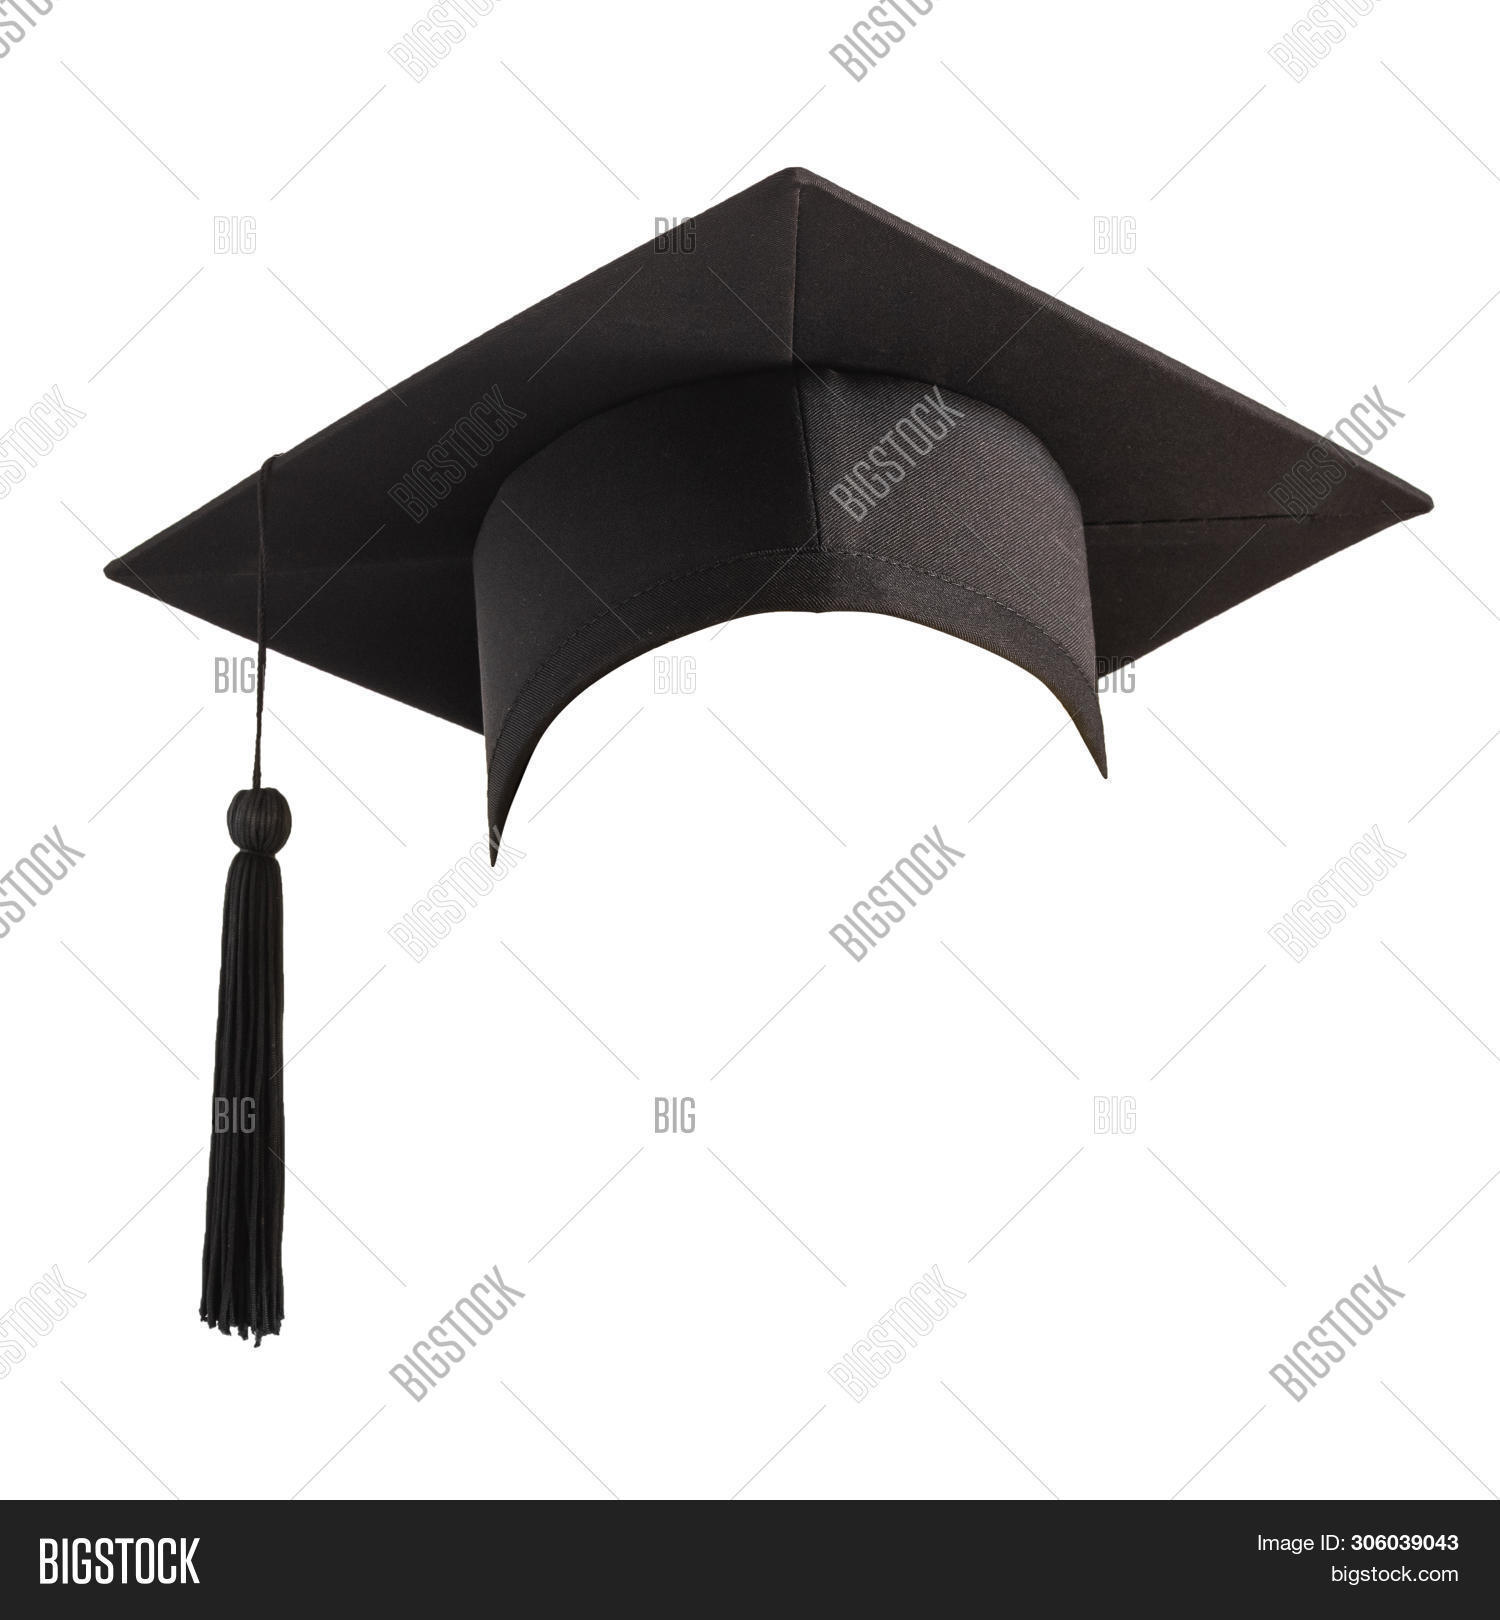 academic,academy,achievement,bachelor,background,black,board,cap,celebration,ceremony,clipping,cloth,college,commencement,congrats,congratulations,degree,diploma,educate,education,educational,expertise,grad,graduate,graduation,hat,high,intelligence,isolated,knowledge,learning,master,mockup,mortar,mortarboard,path,scholar,school,sign,student,study,success,symbol,tassel,template,uniform,university,up,white,wisdom